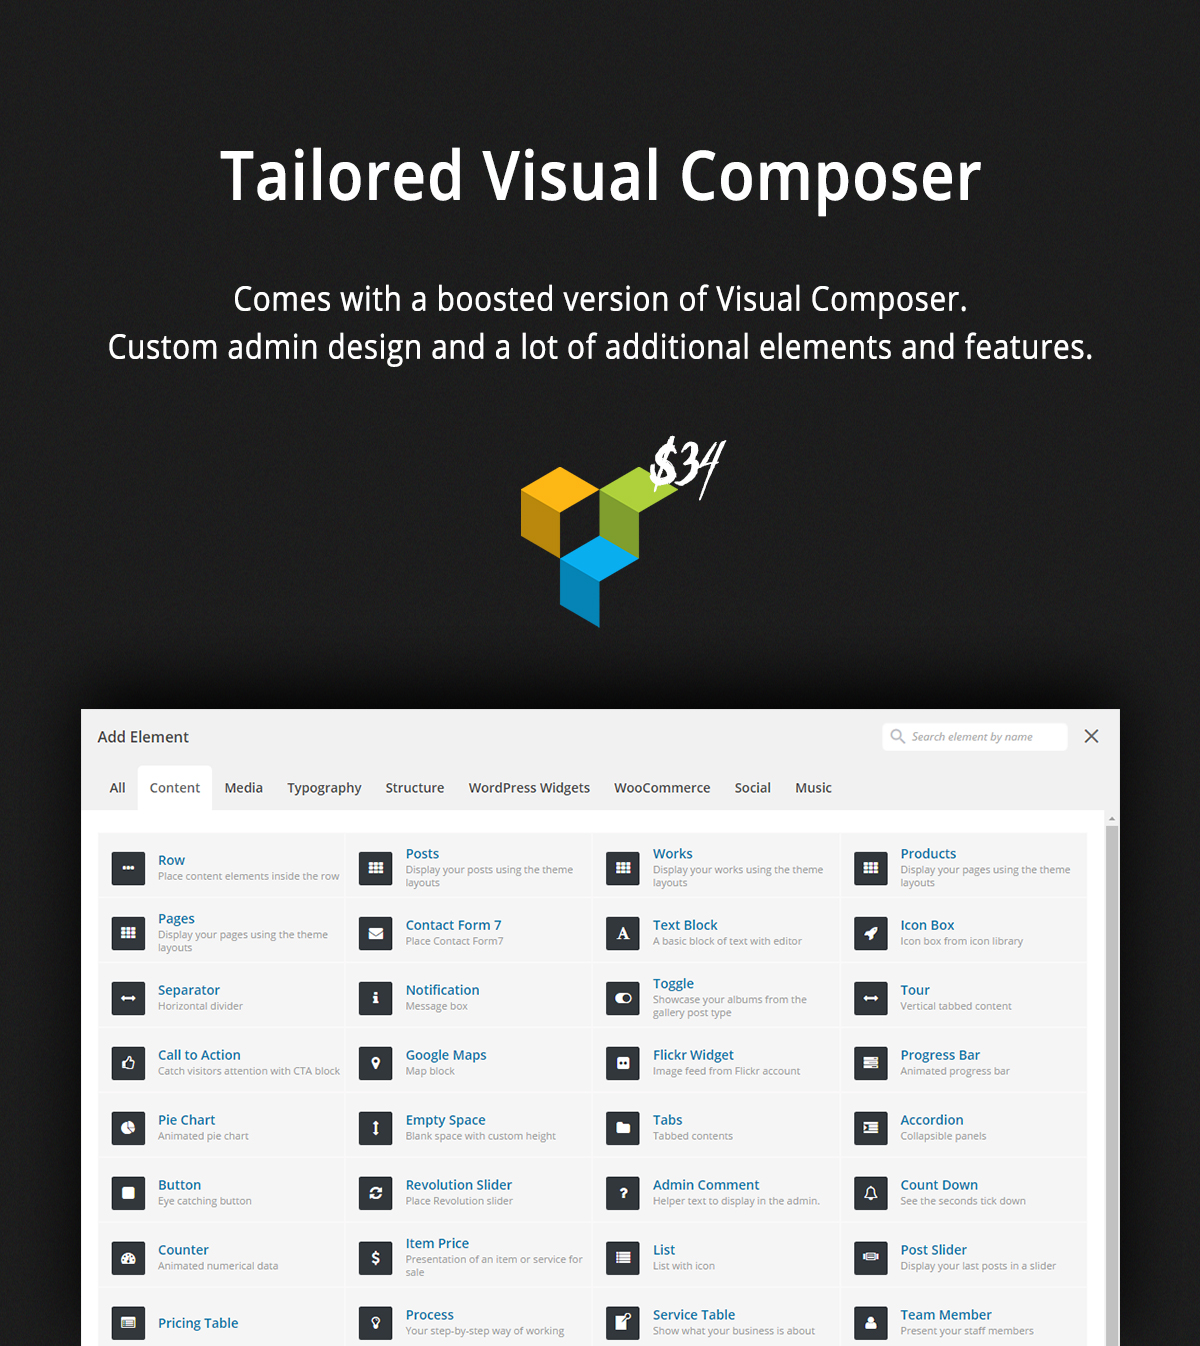 Tailored Visual Composer